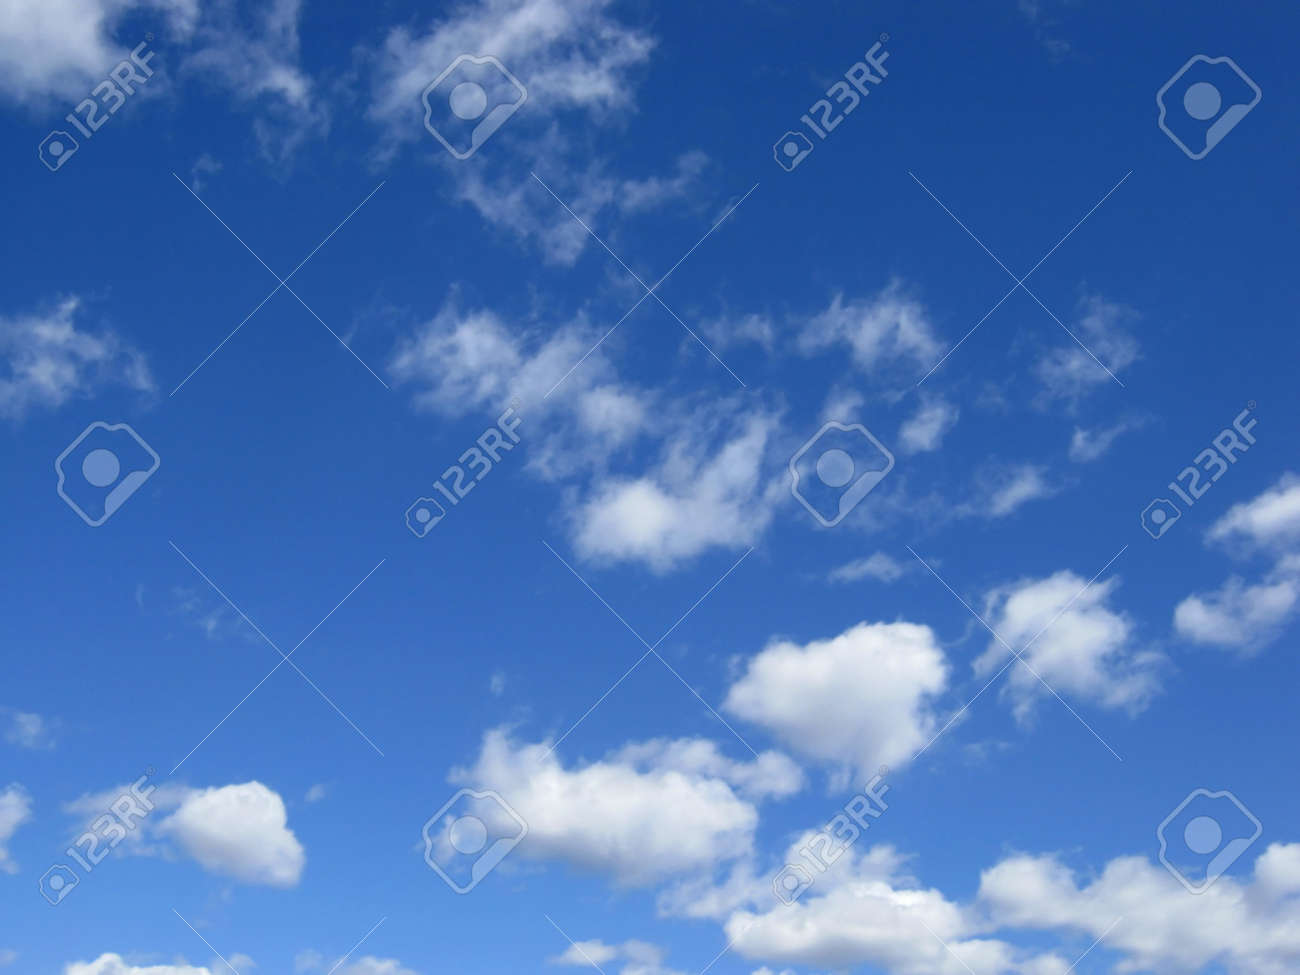 Blue sky with clouds. Air nature. Stock Photo - 9405289